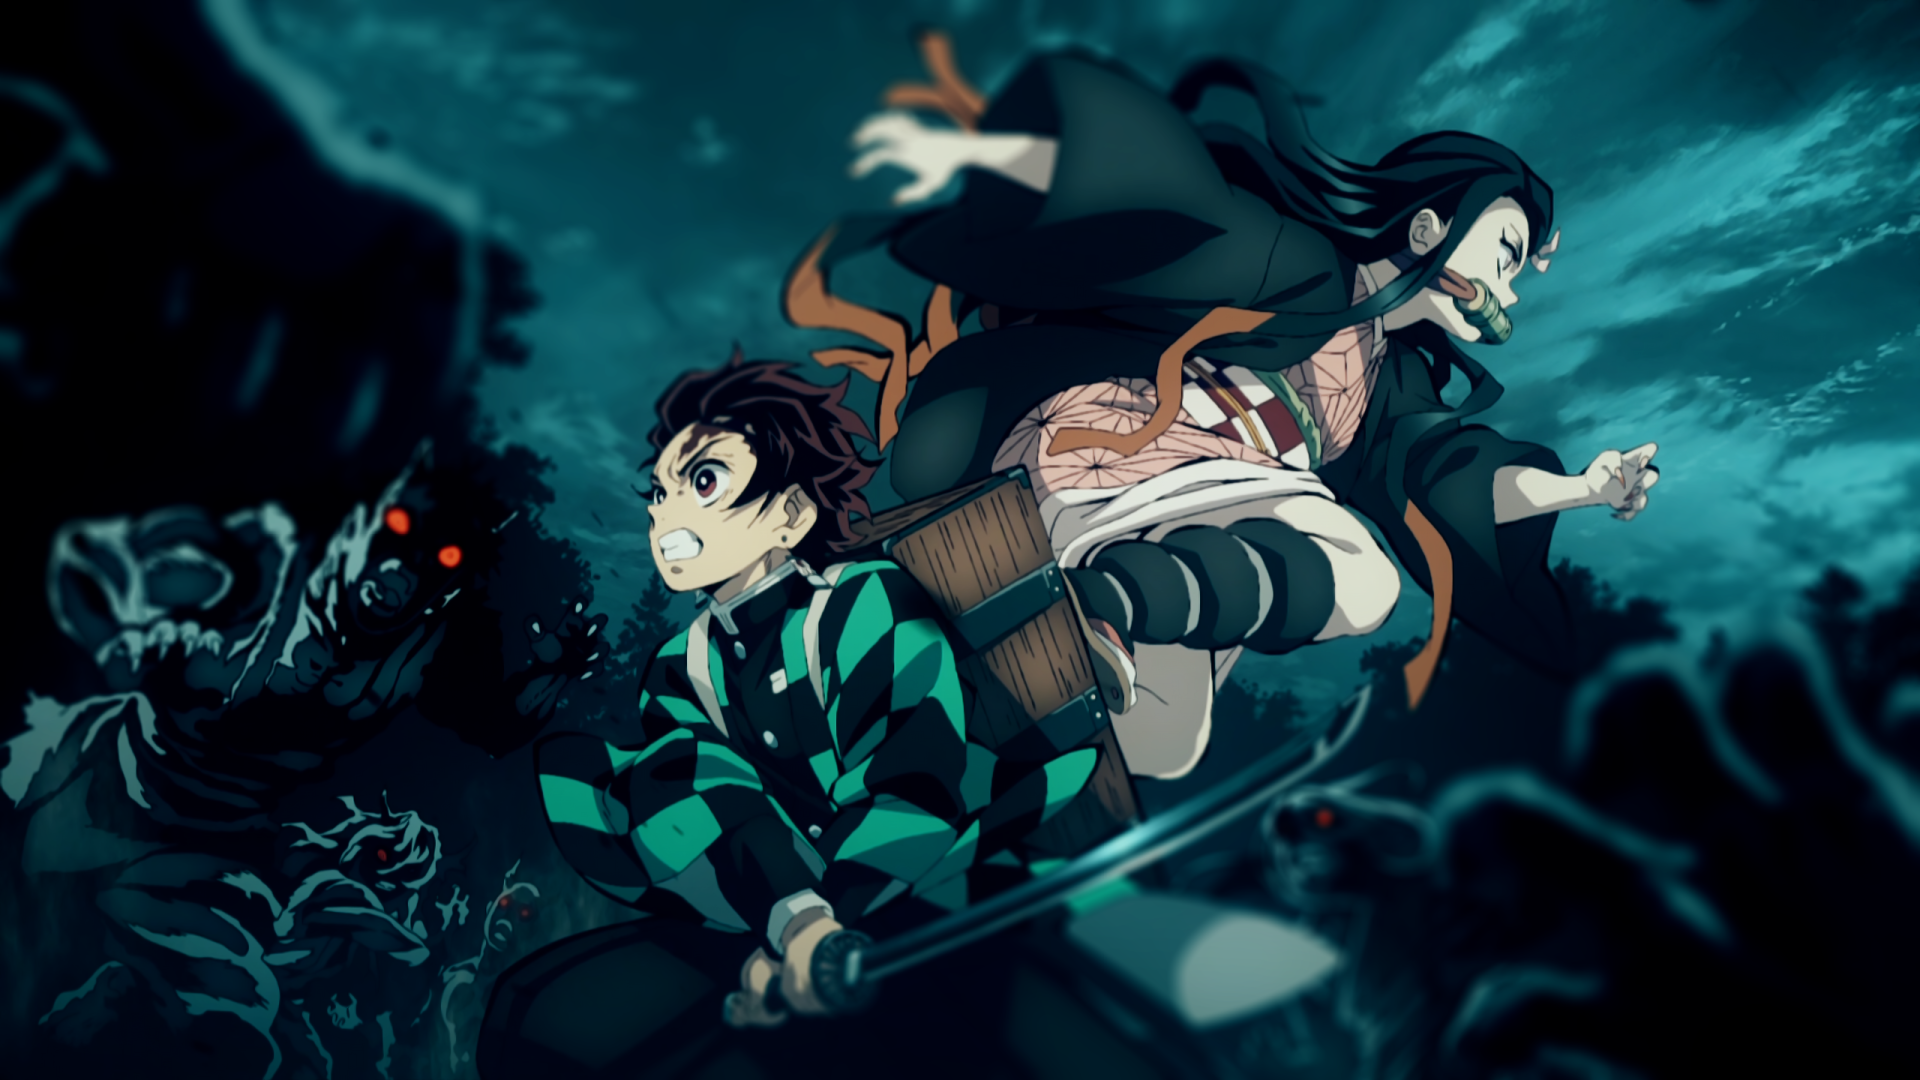 Tanjirou And Nezuko Anime Demon Slayer Kimetsu No Yaiba Wallpaper